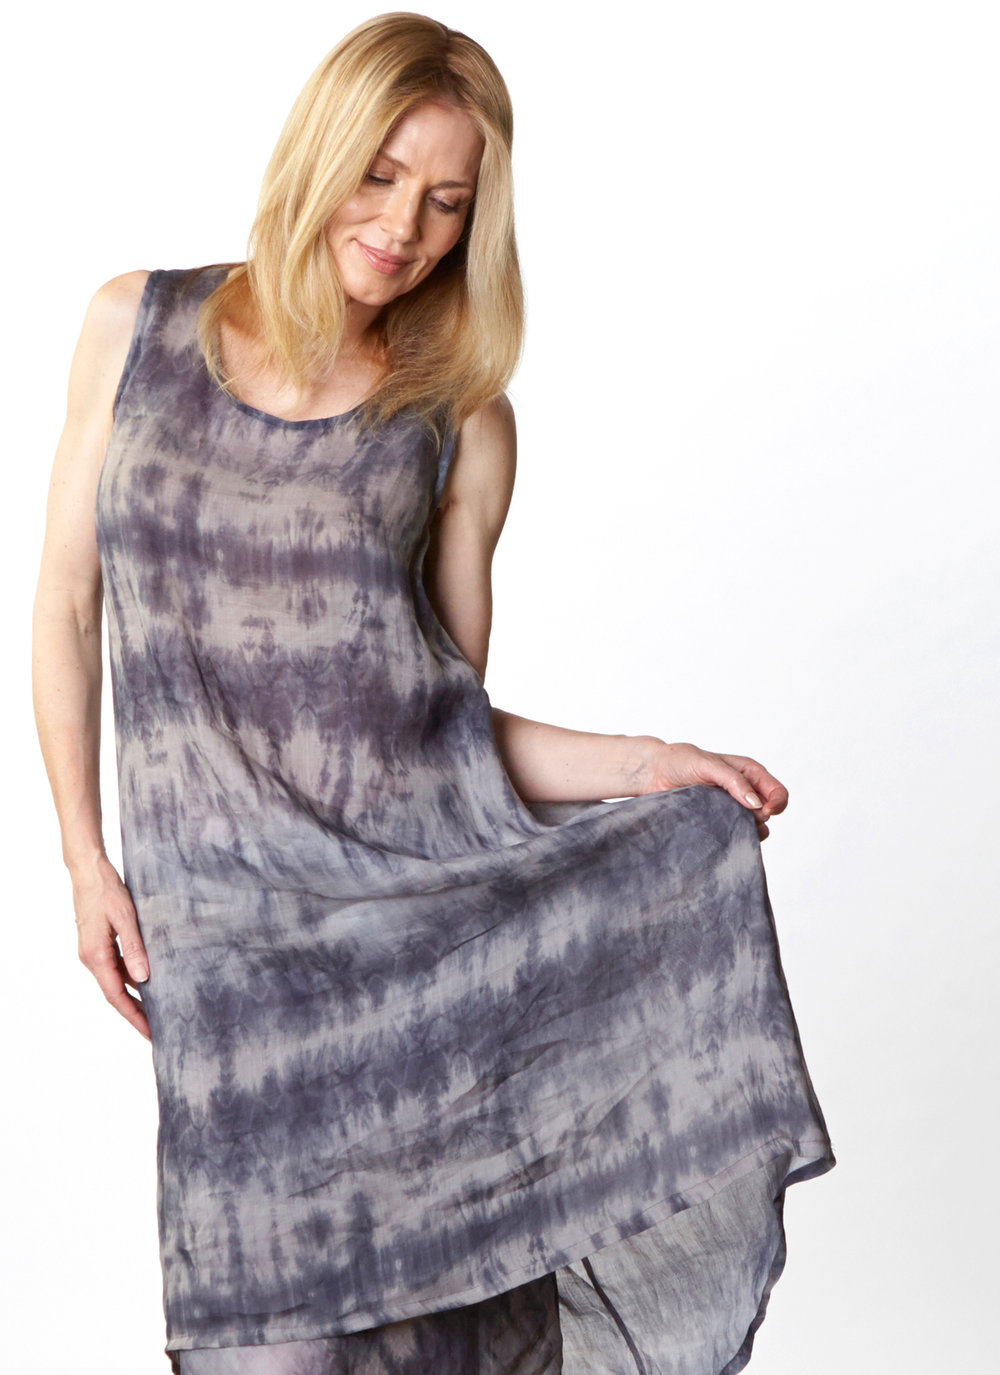 Louie Dress, Long Bias Skirt in Grey/Blue Italian Ramie